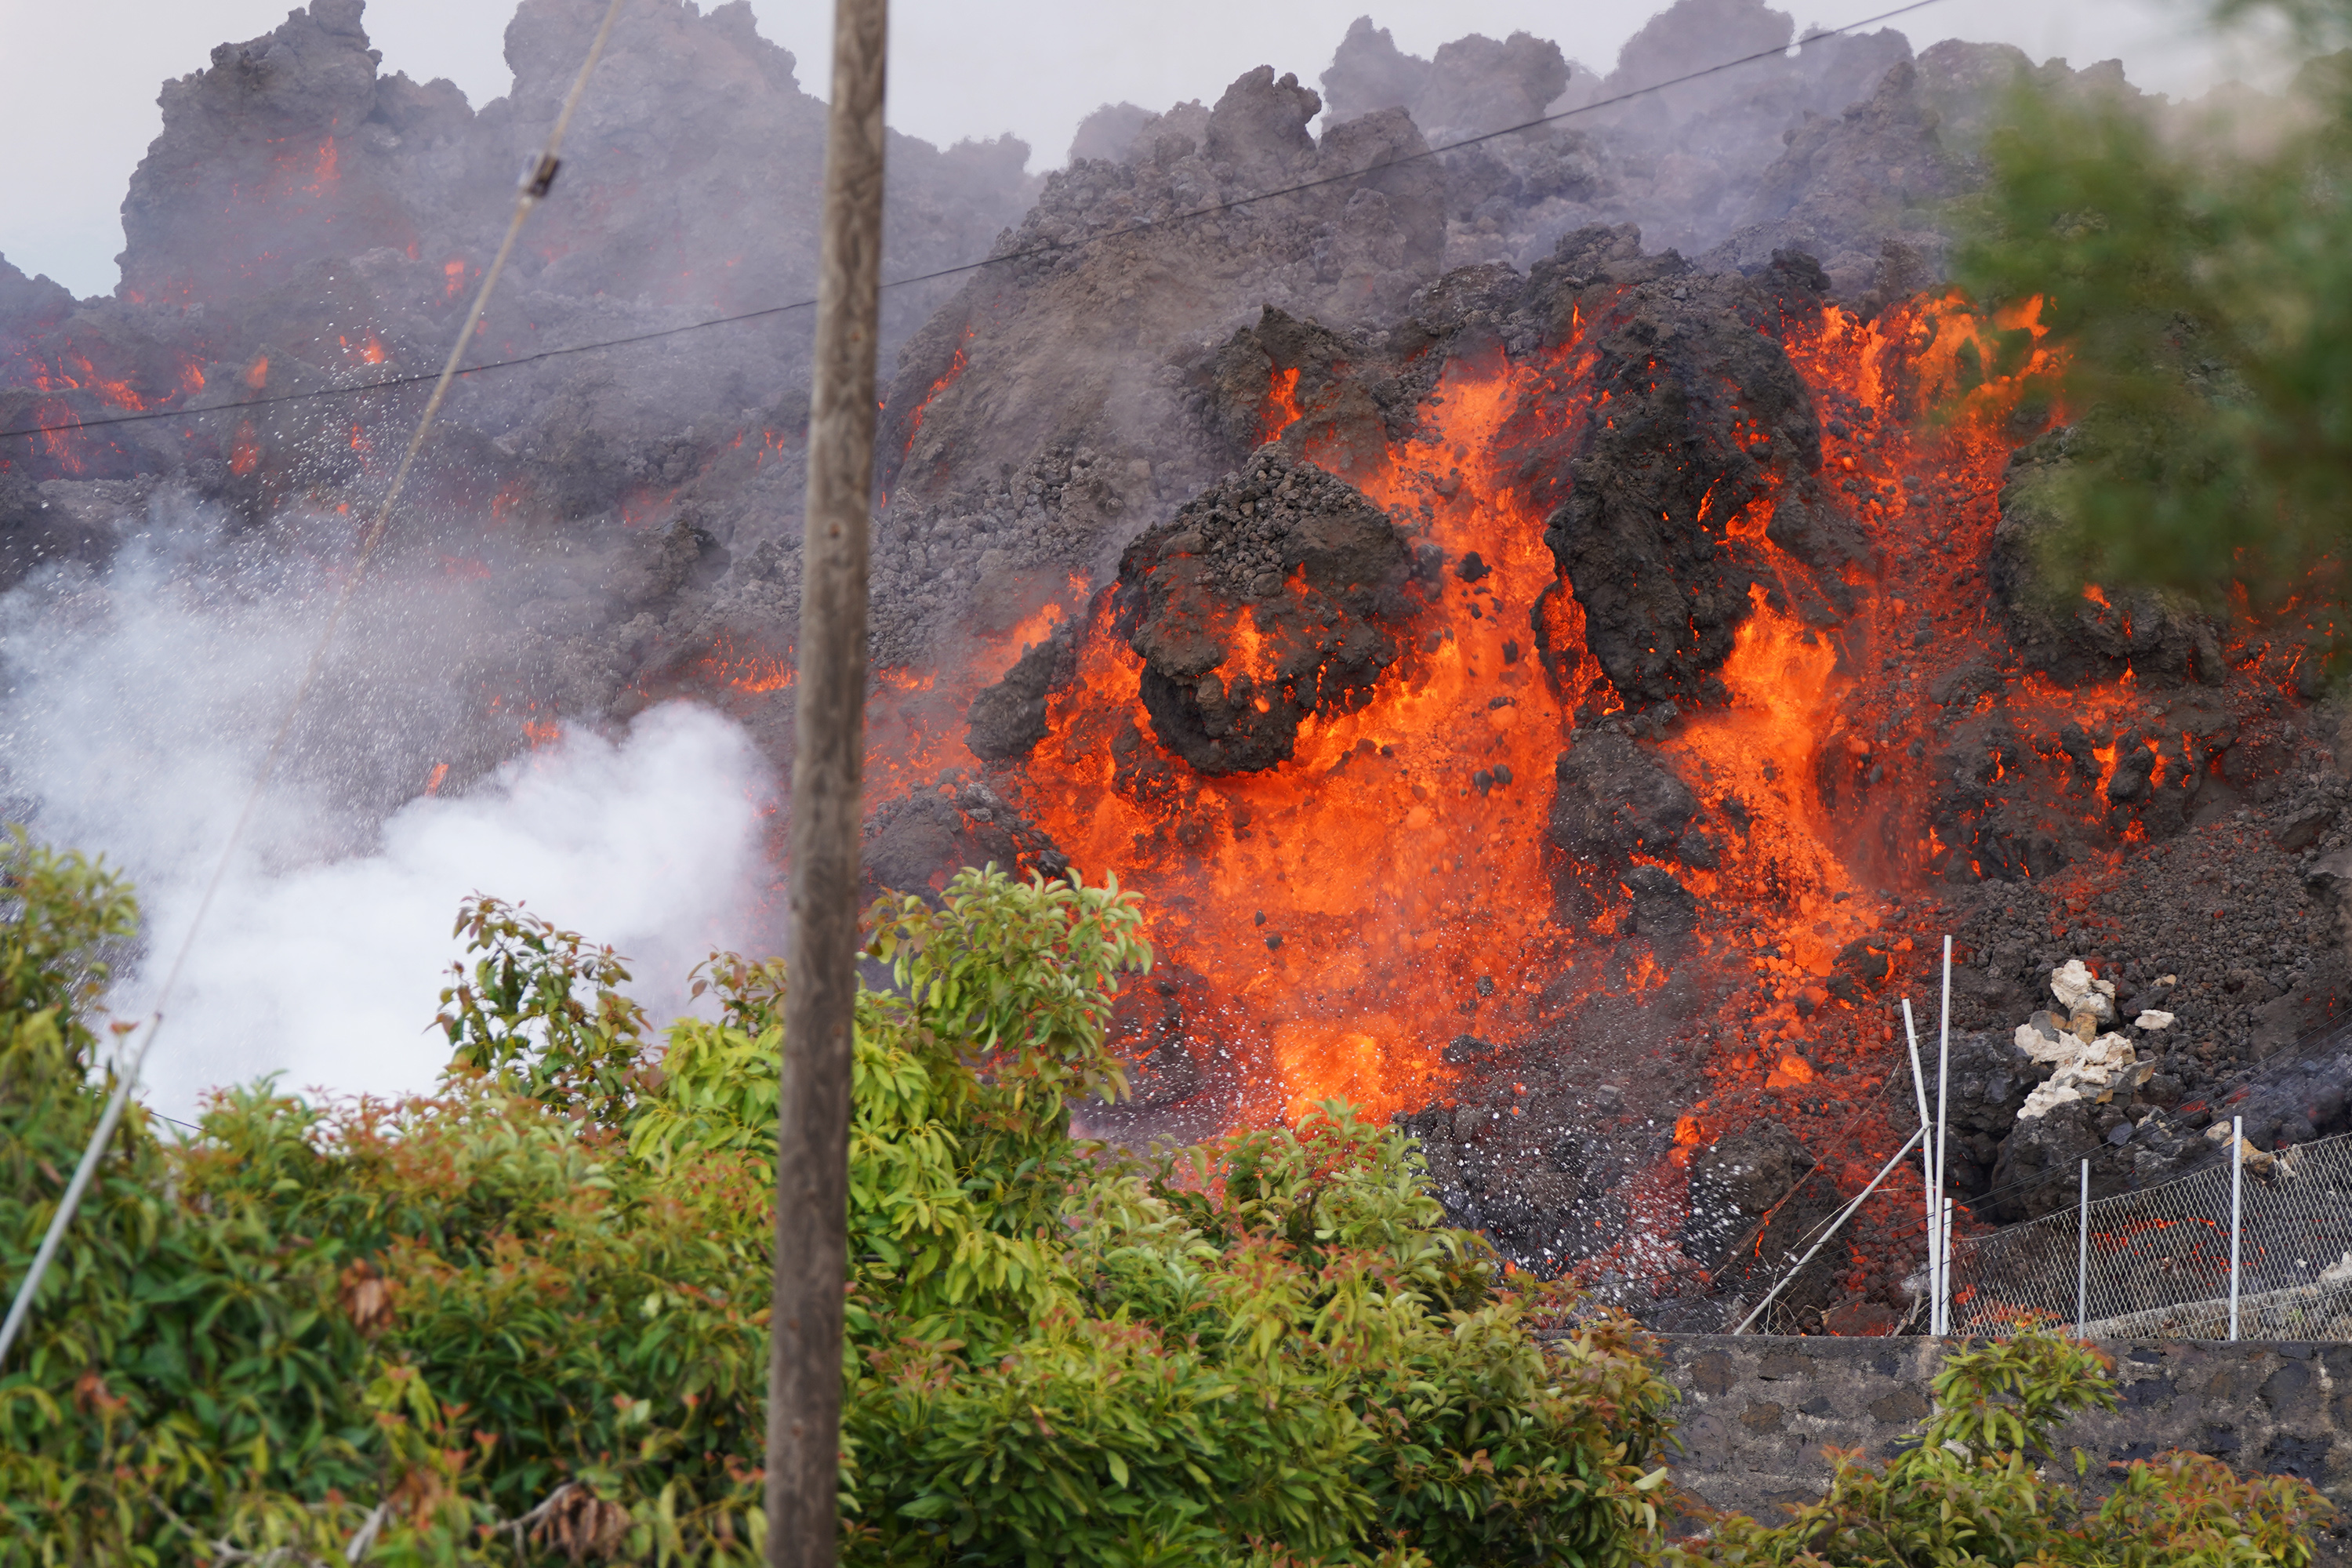 La Palma volcano continues to erupt with up to nine vents spewing lava